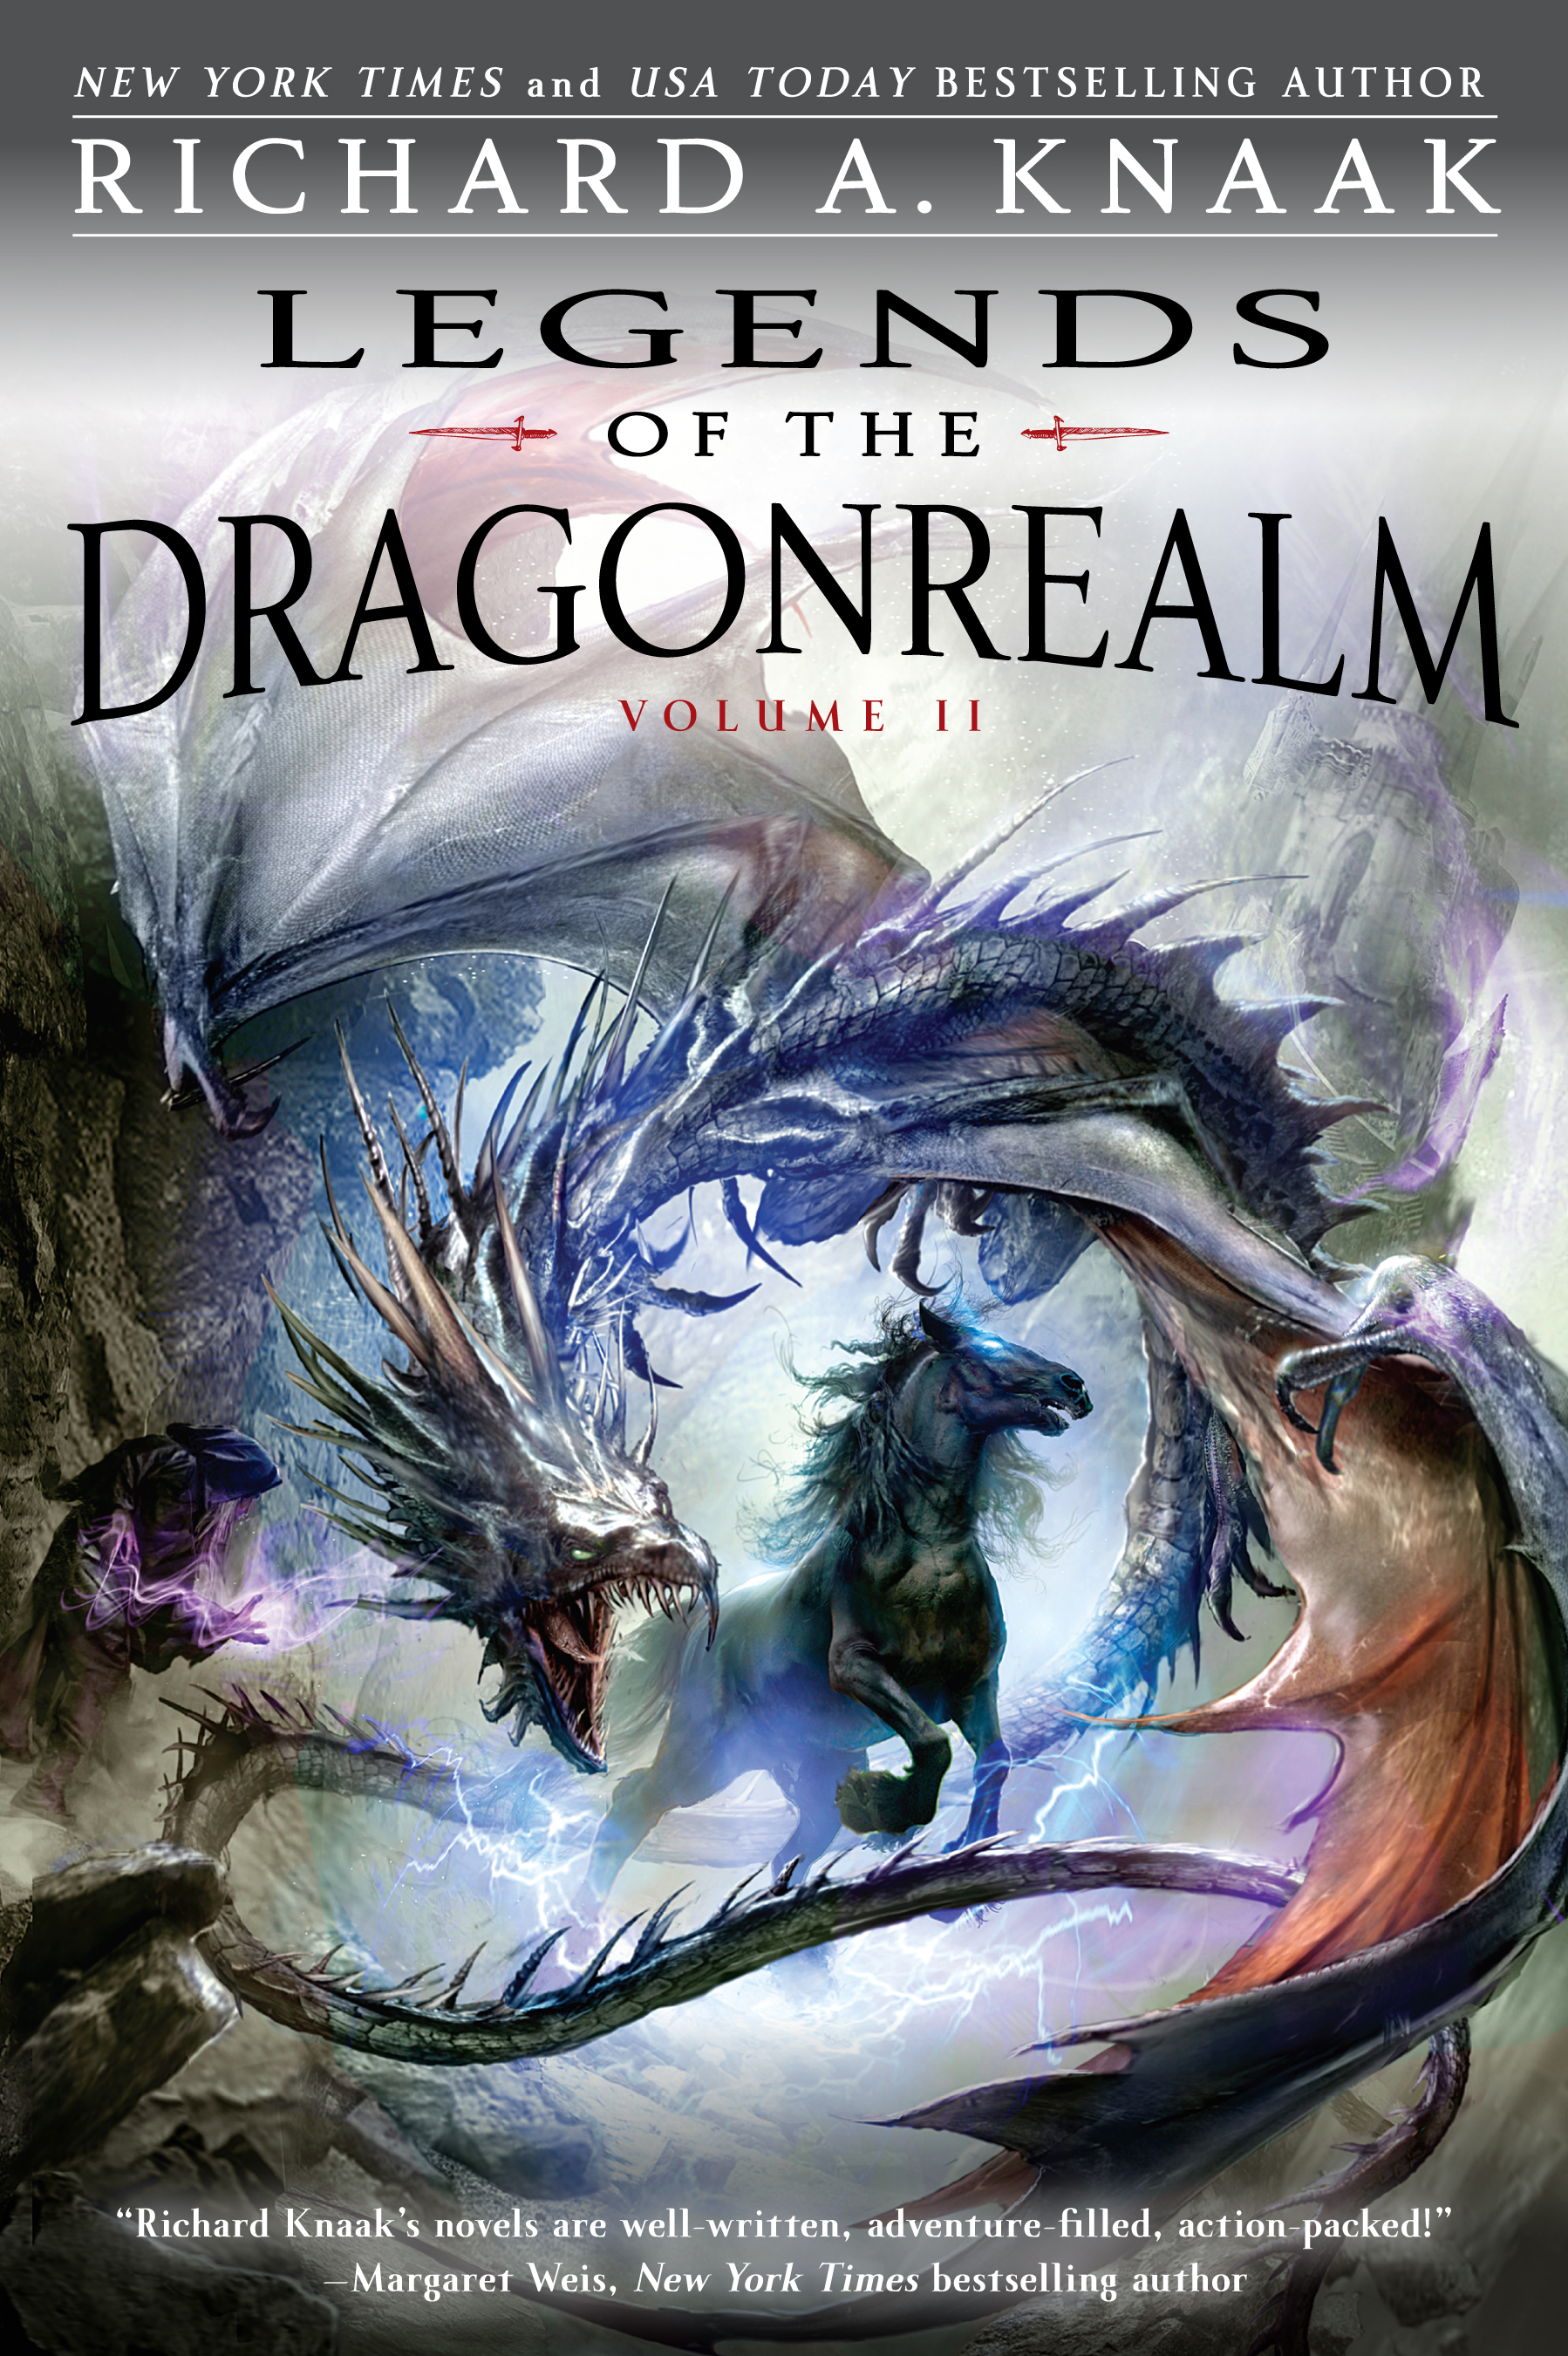 Legends Of The Dragonrealm, Vol Ii  Book By Richard A Knaak  Official  Publisher Page  Simon & Schuster